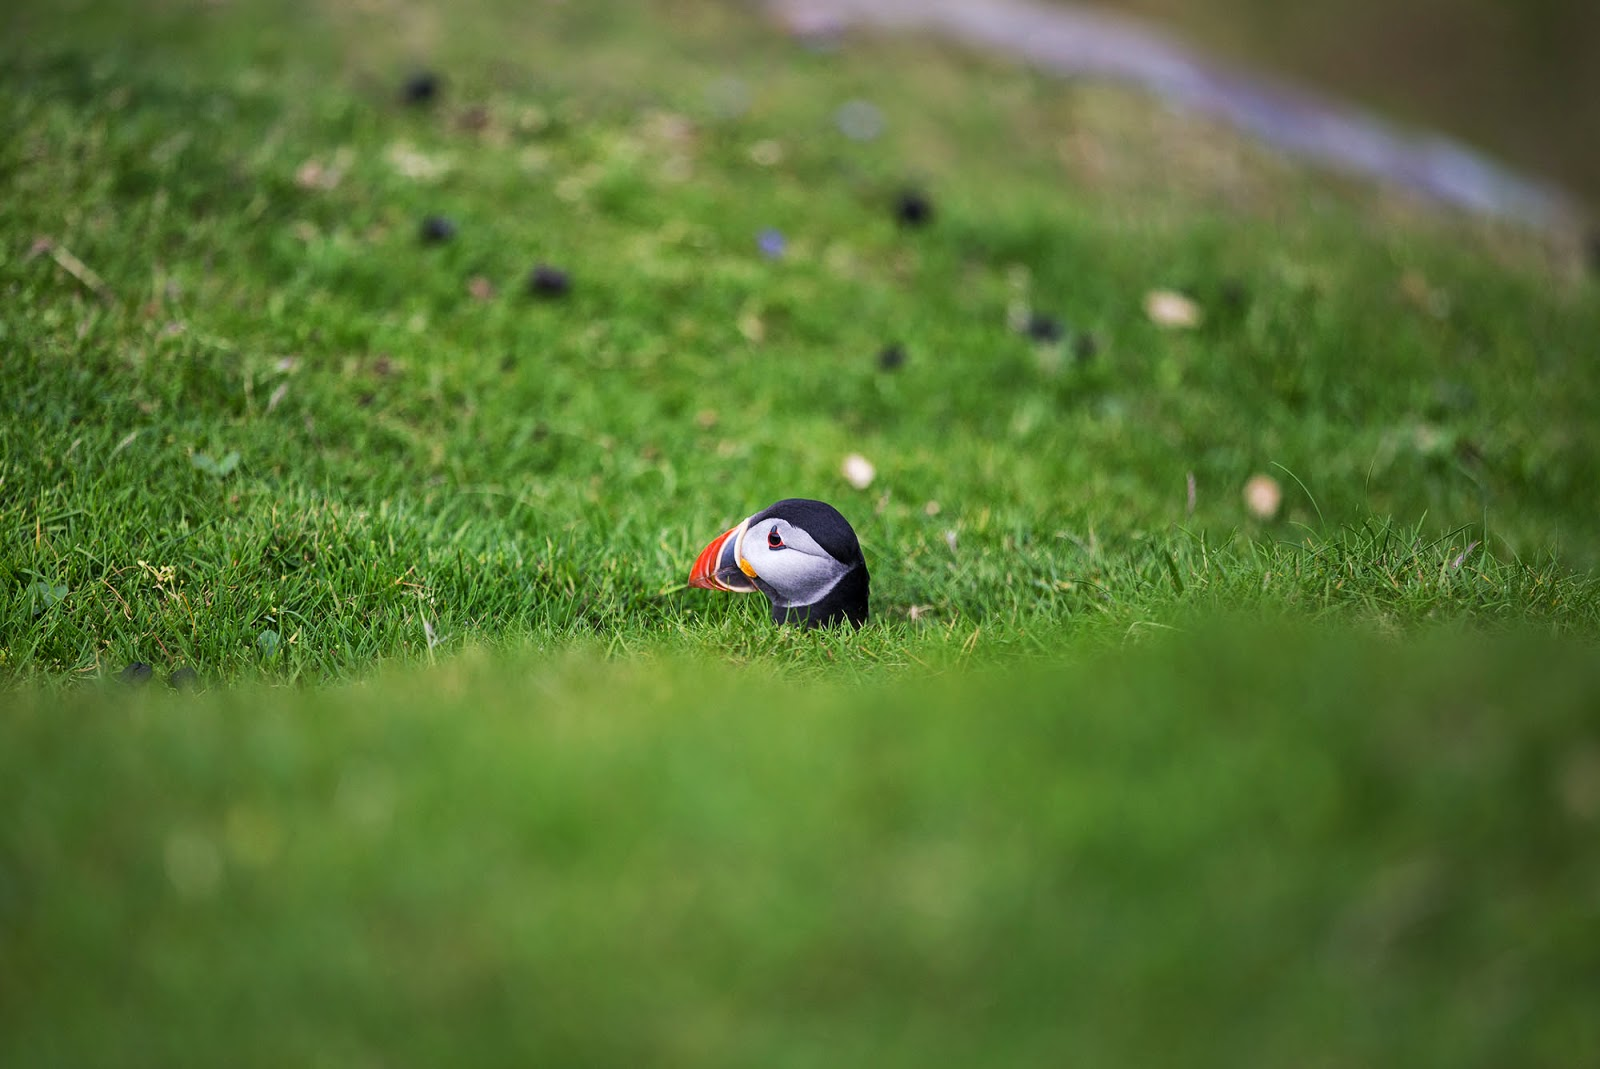 Puffin in The Shetland Islands, Scotland